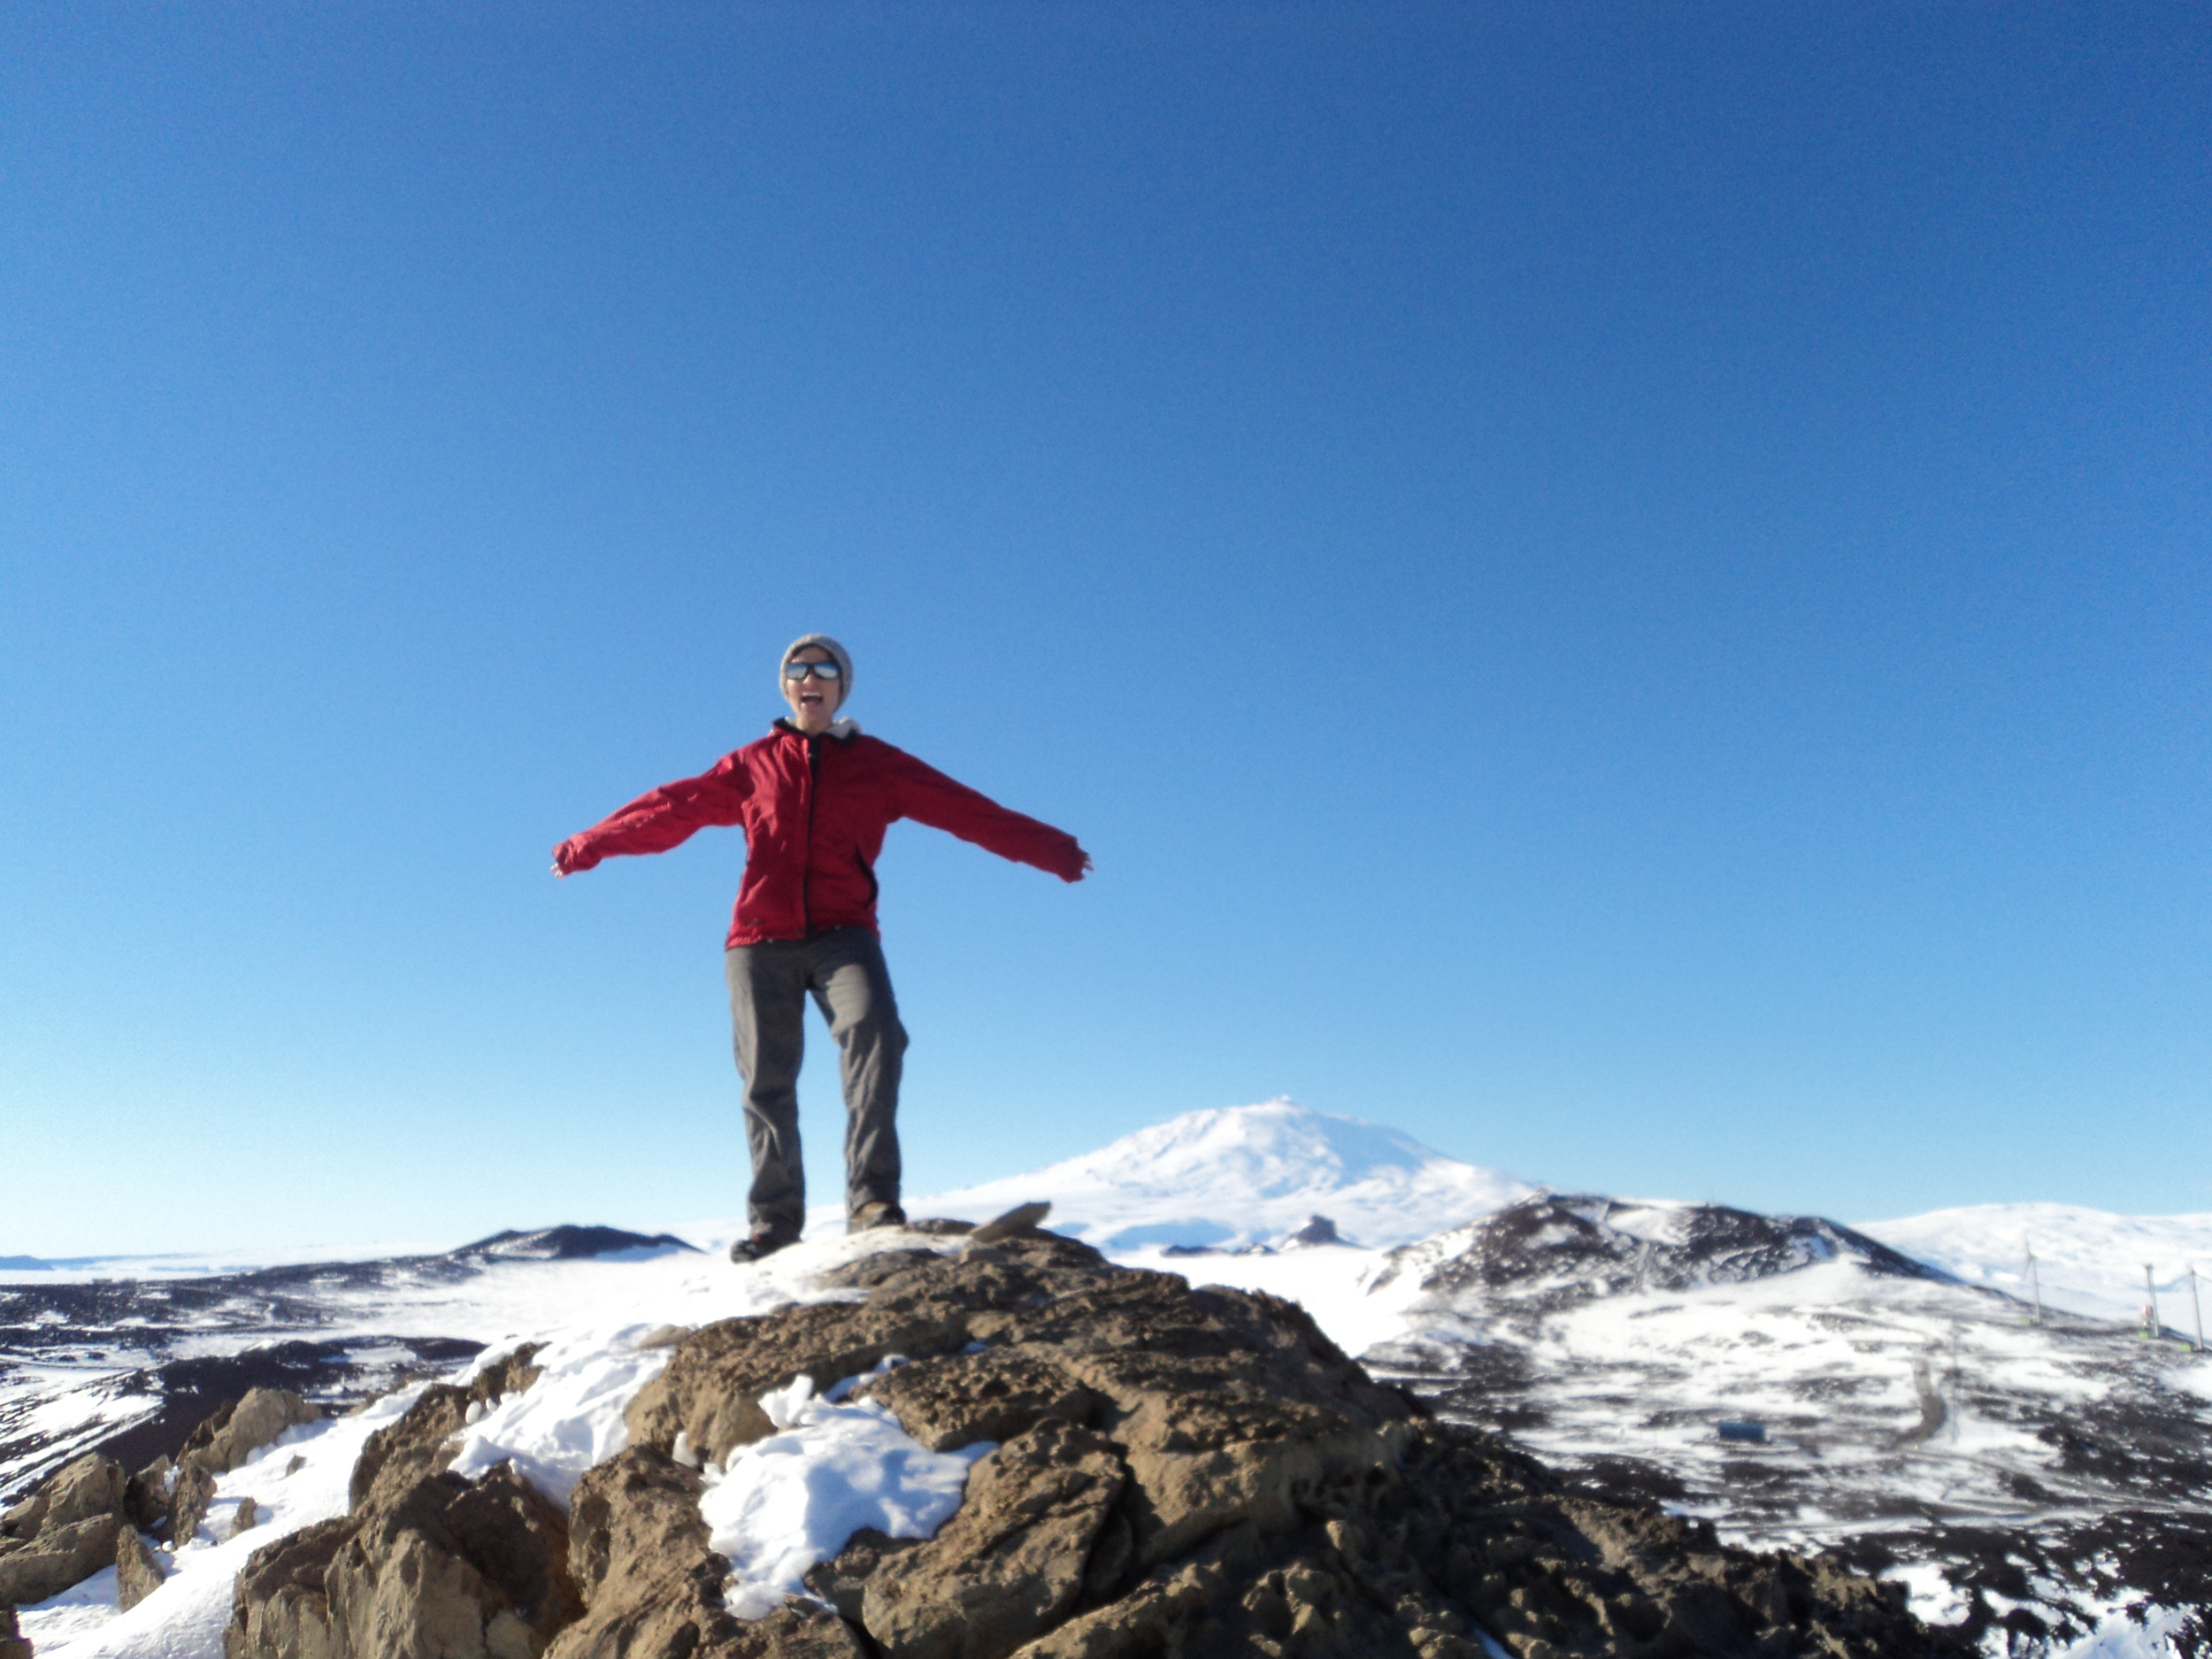 Hannah at the top! With Mt. Erebus churning away in the background.